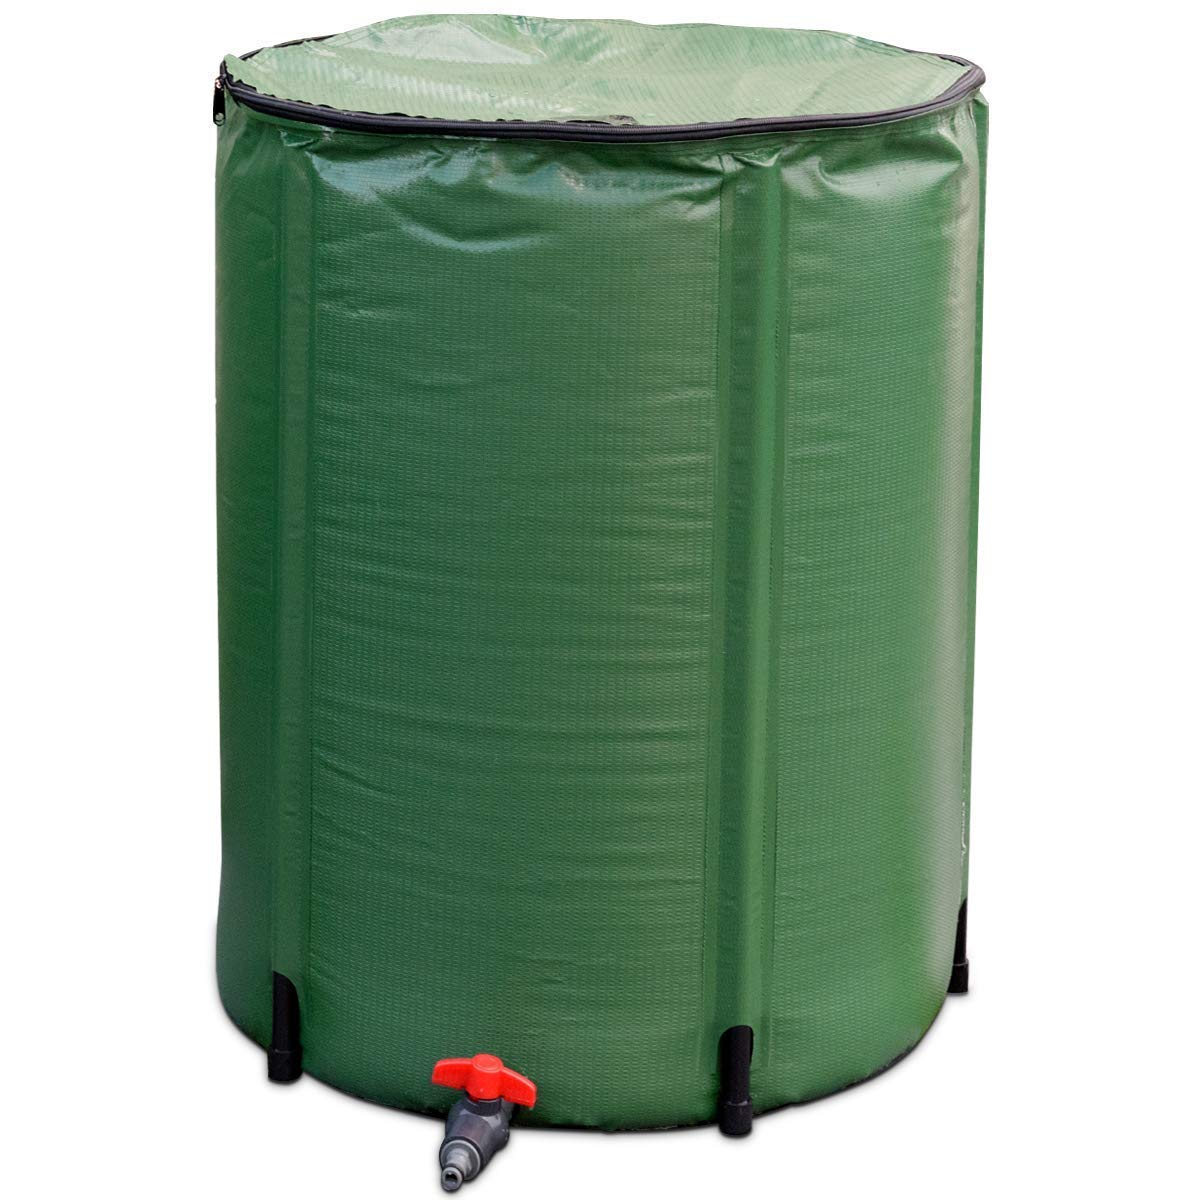 Goflame Rain Barrel Water Collector Portable Foldable Collapsible Tank,Spigot Filter Water Storage Container, Green (60 Gallon)